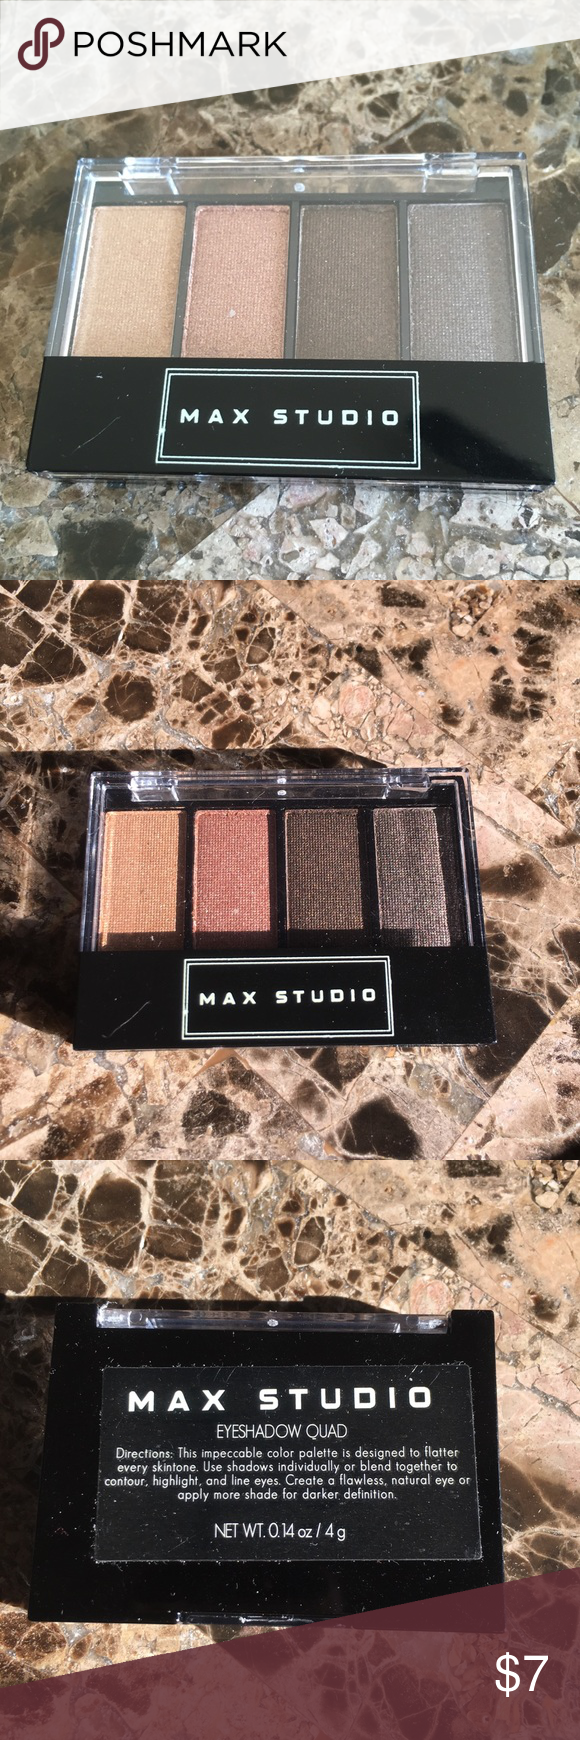 New Max Studio Eye Shadow Quad Palettes Brown (With images